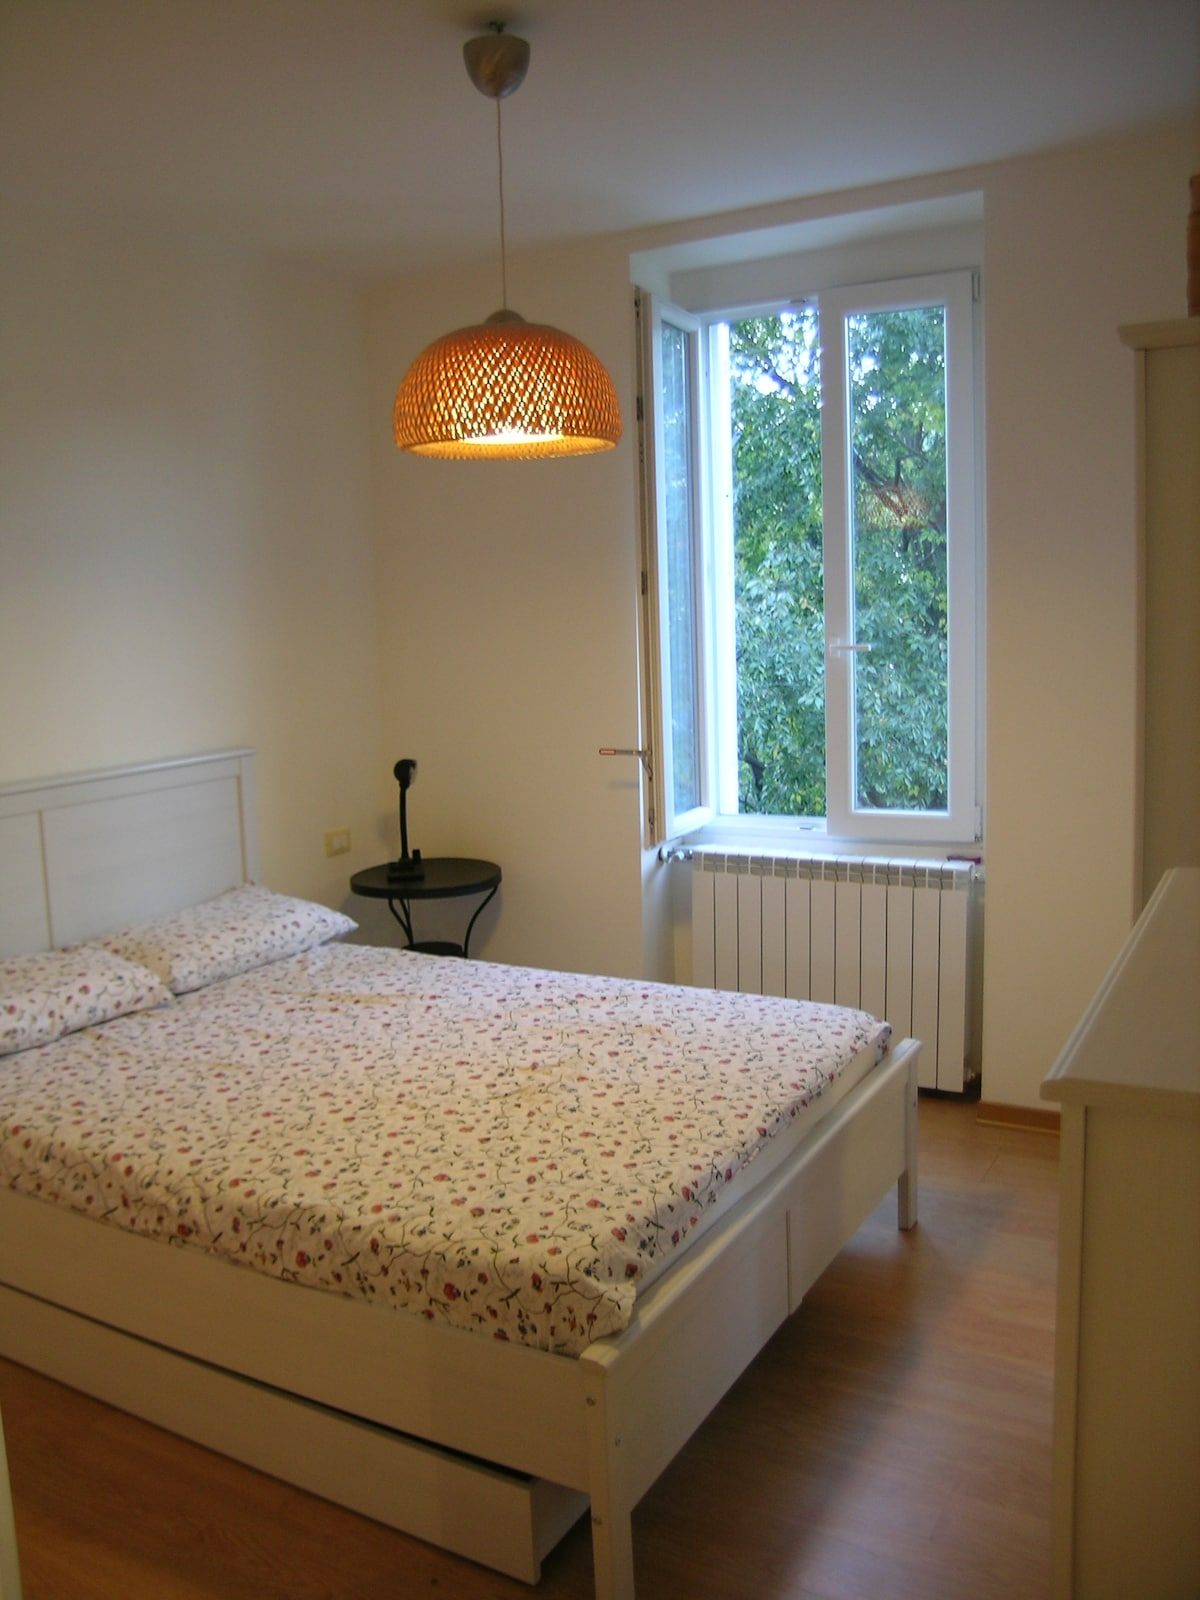 Oasi apartment in the city center